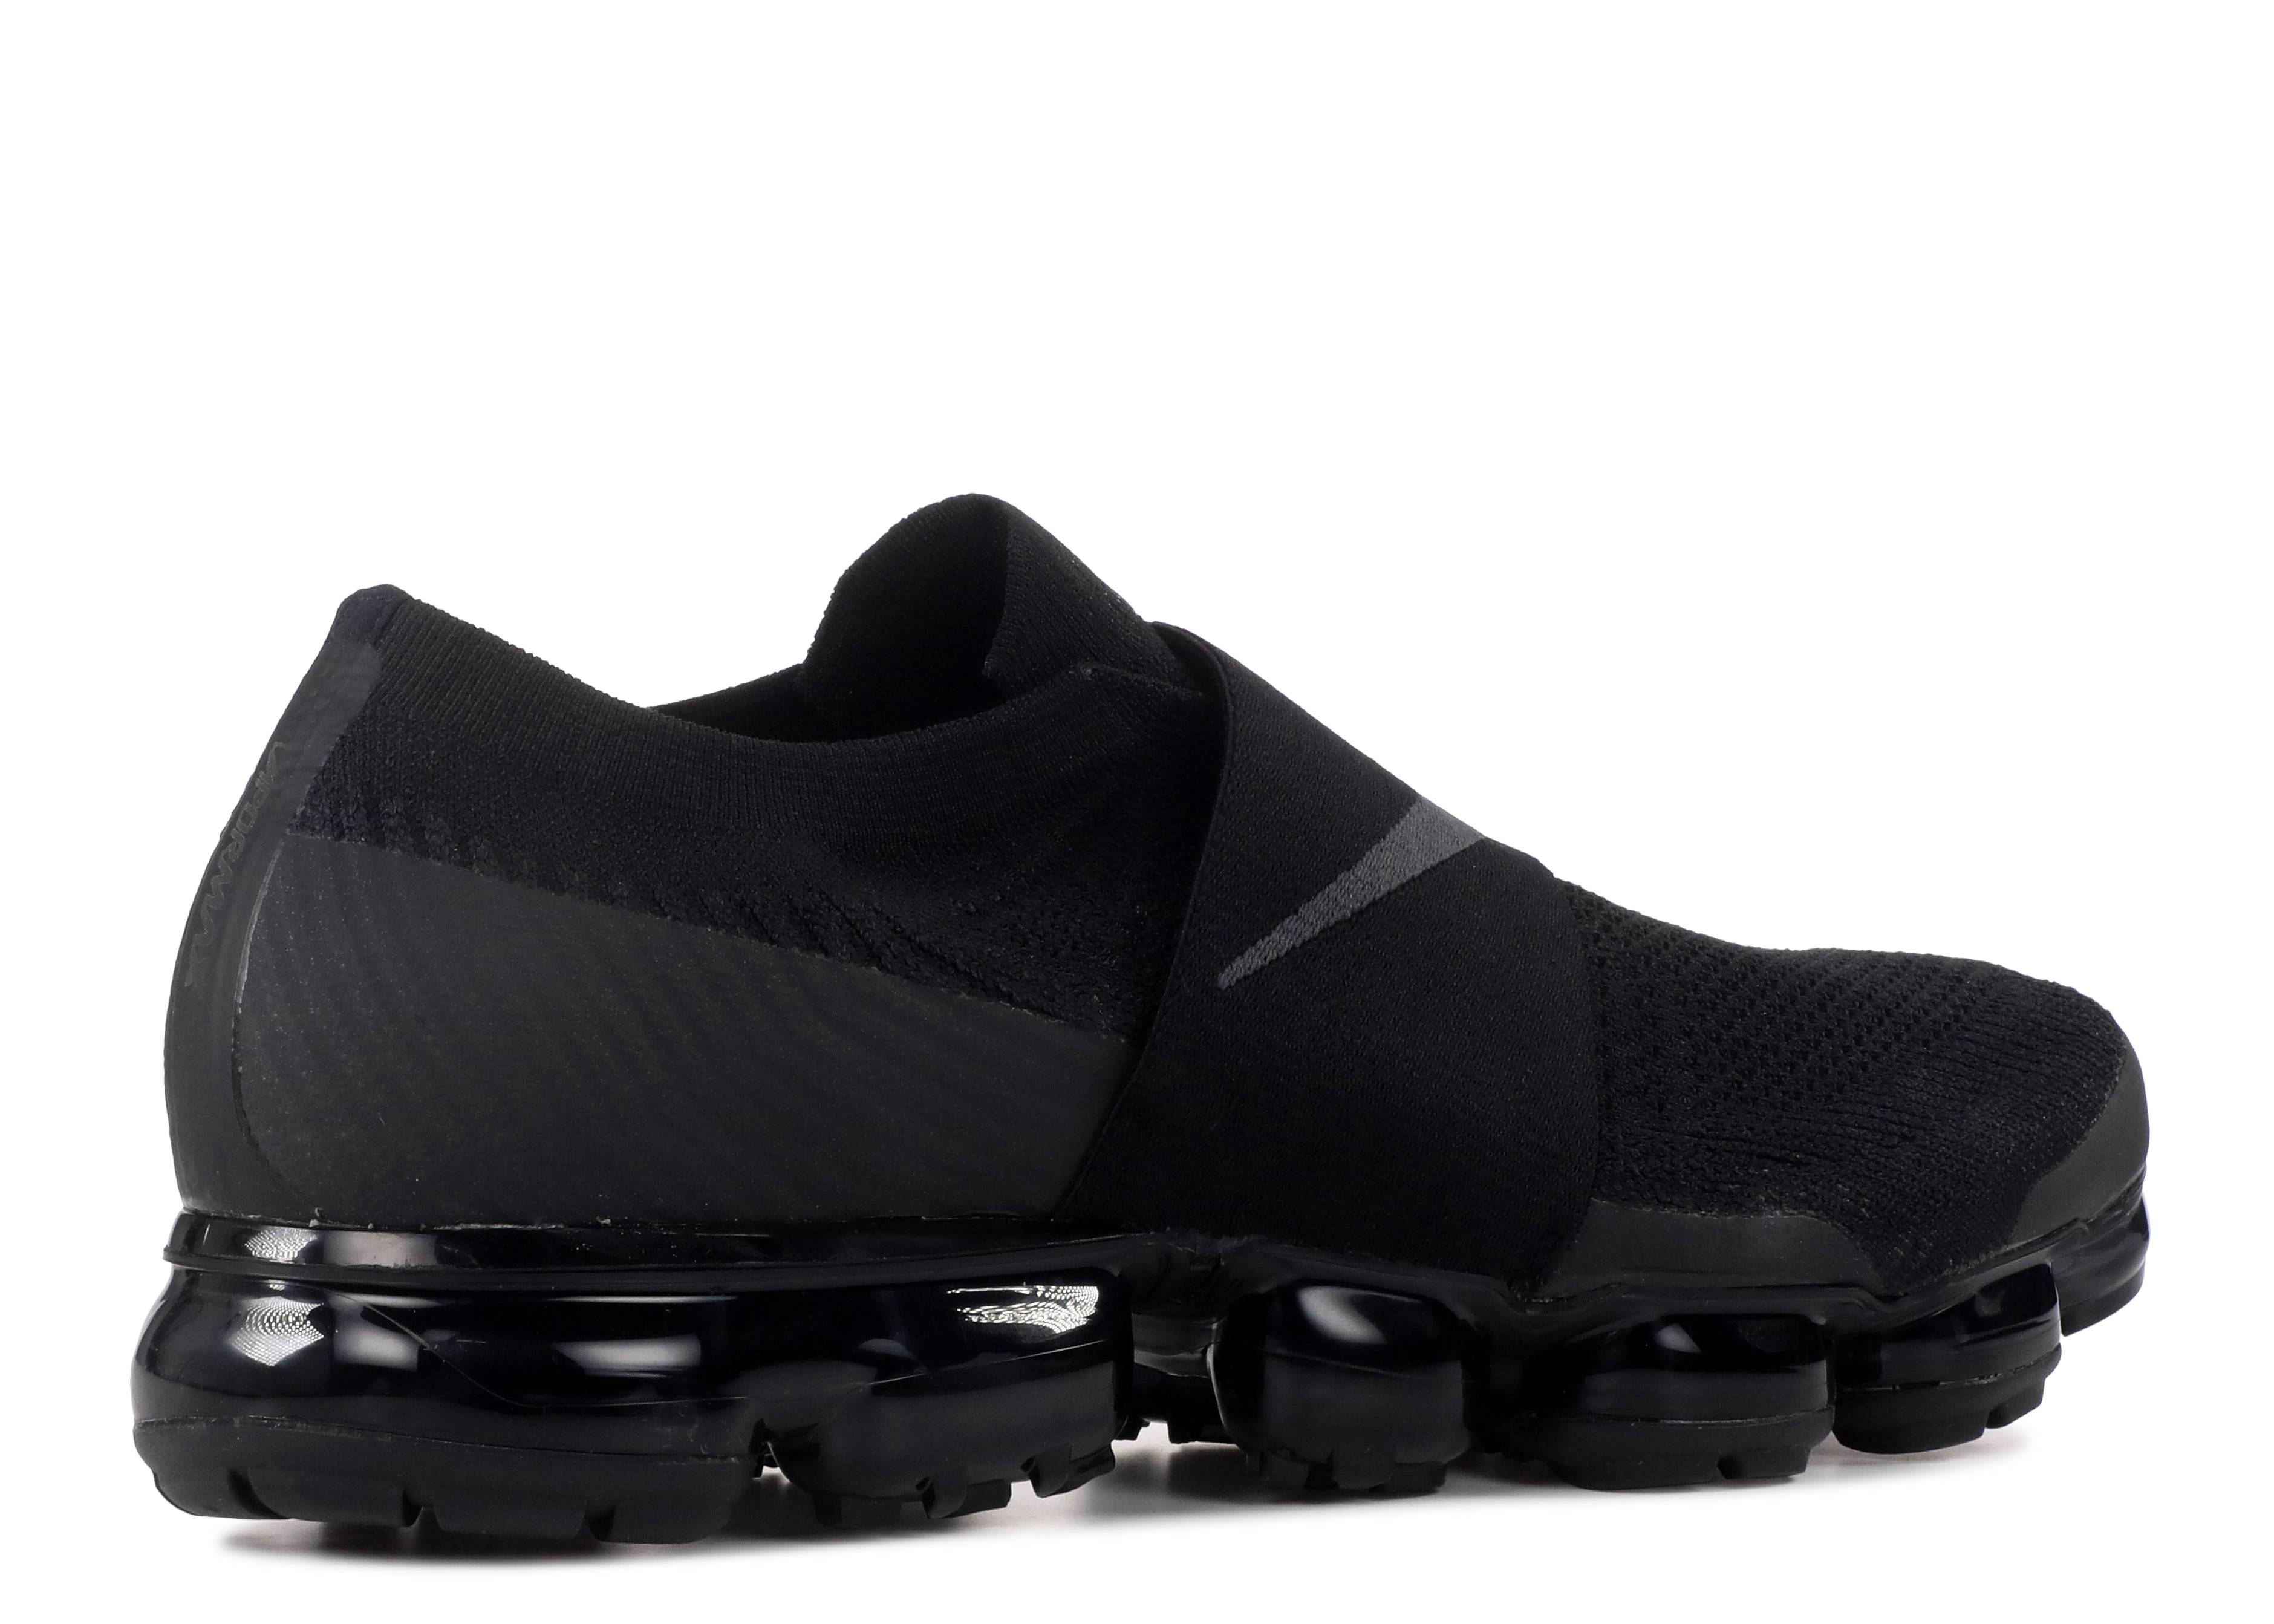 5455fe3ffe5 Nike Air Vapormax Flyknit Moc - Nike - AH3397 004 - black anthracite ...